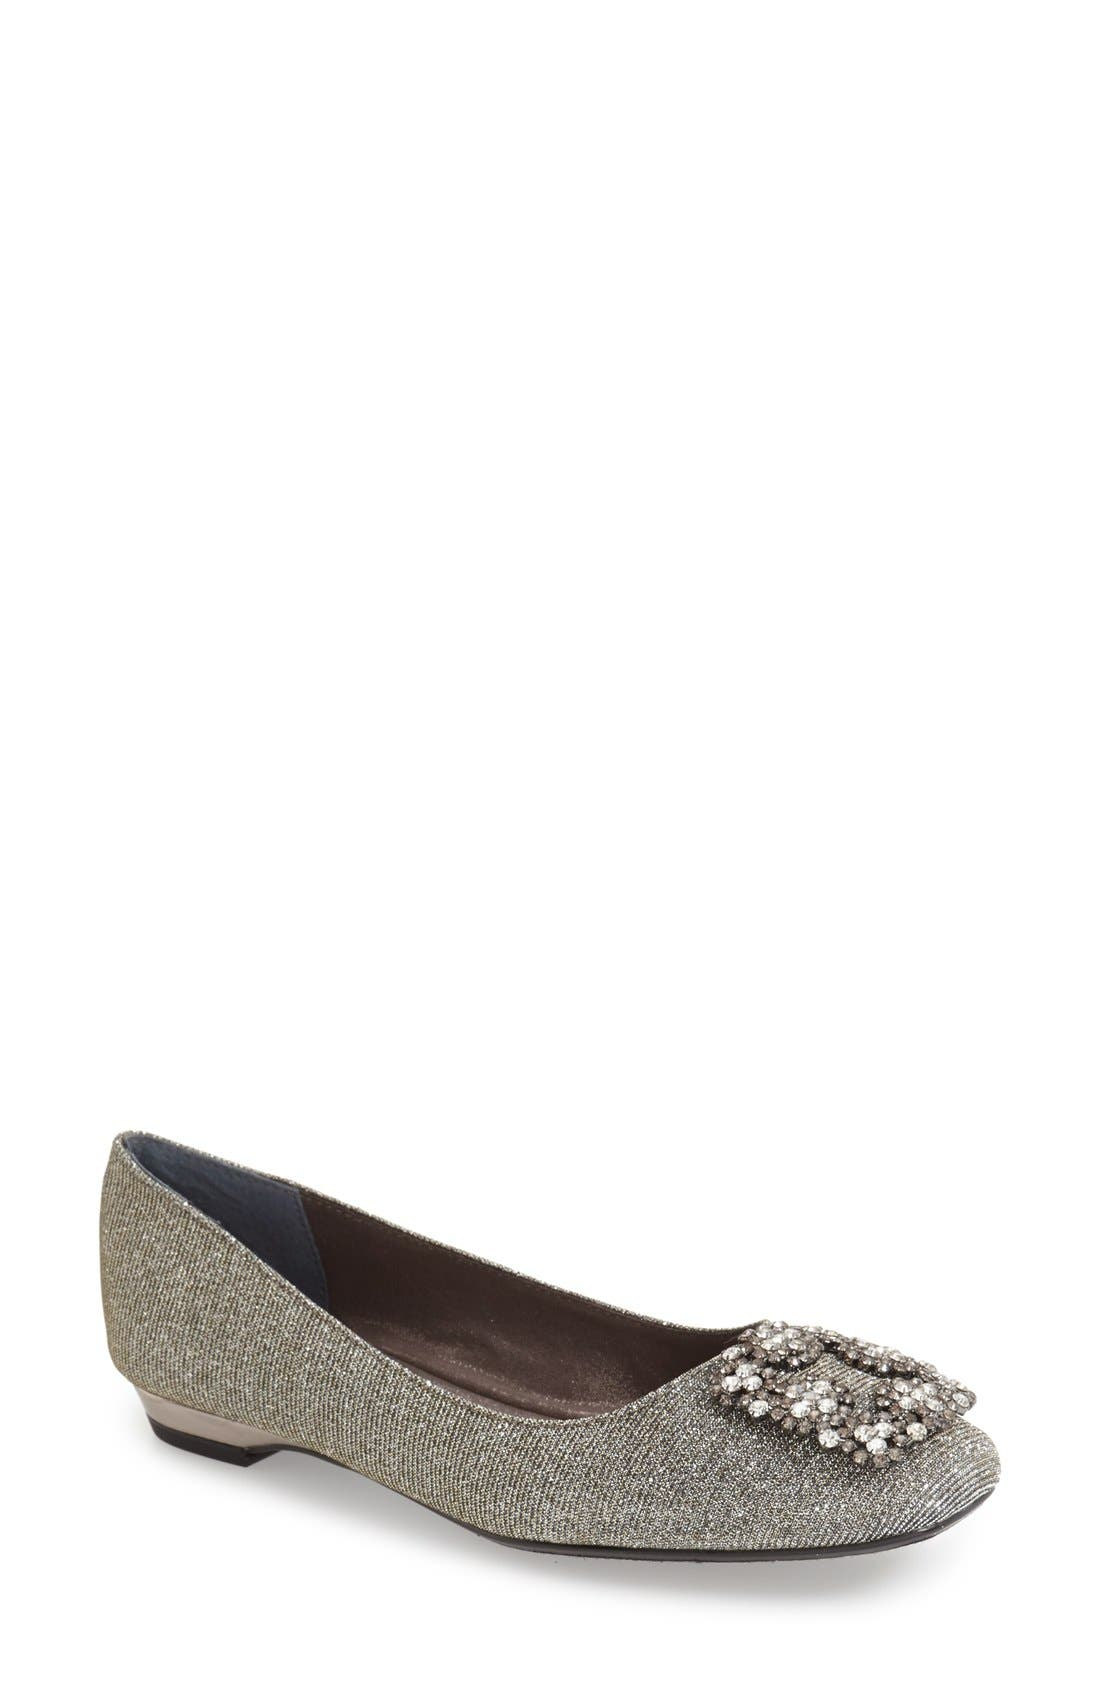 J. Renee Women's 'Dewport' Flat